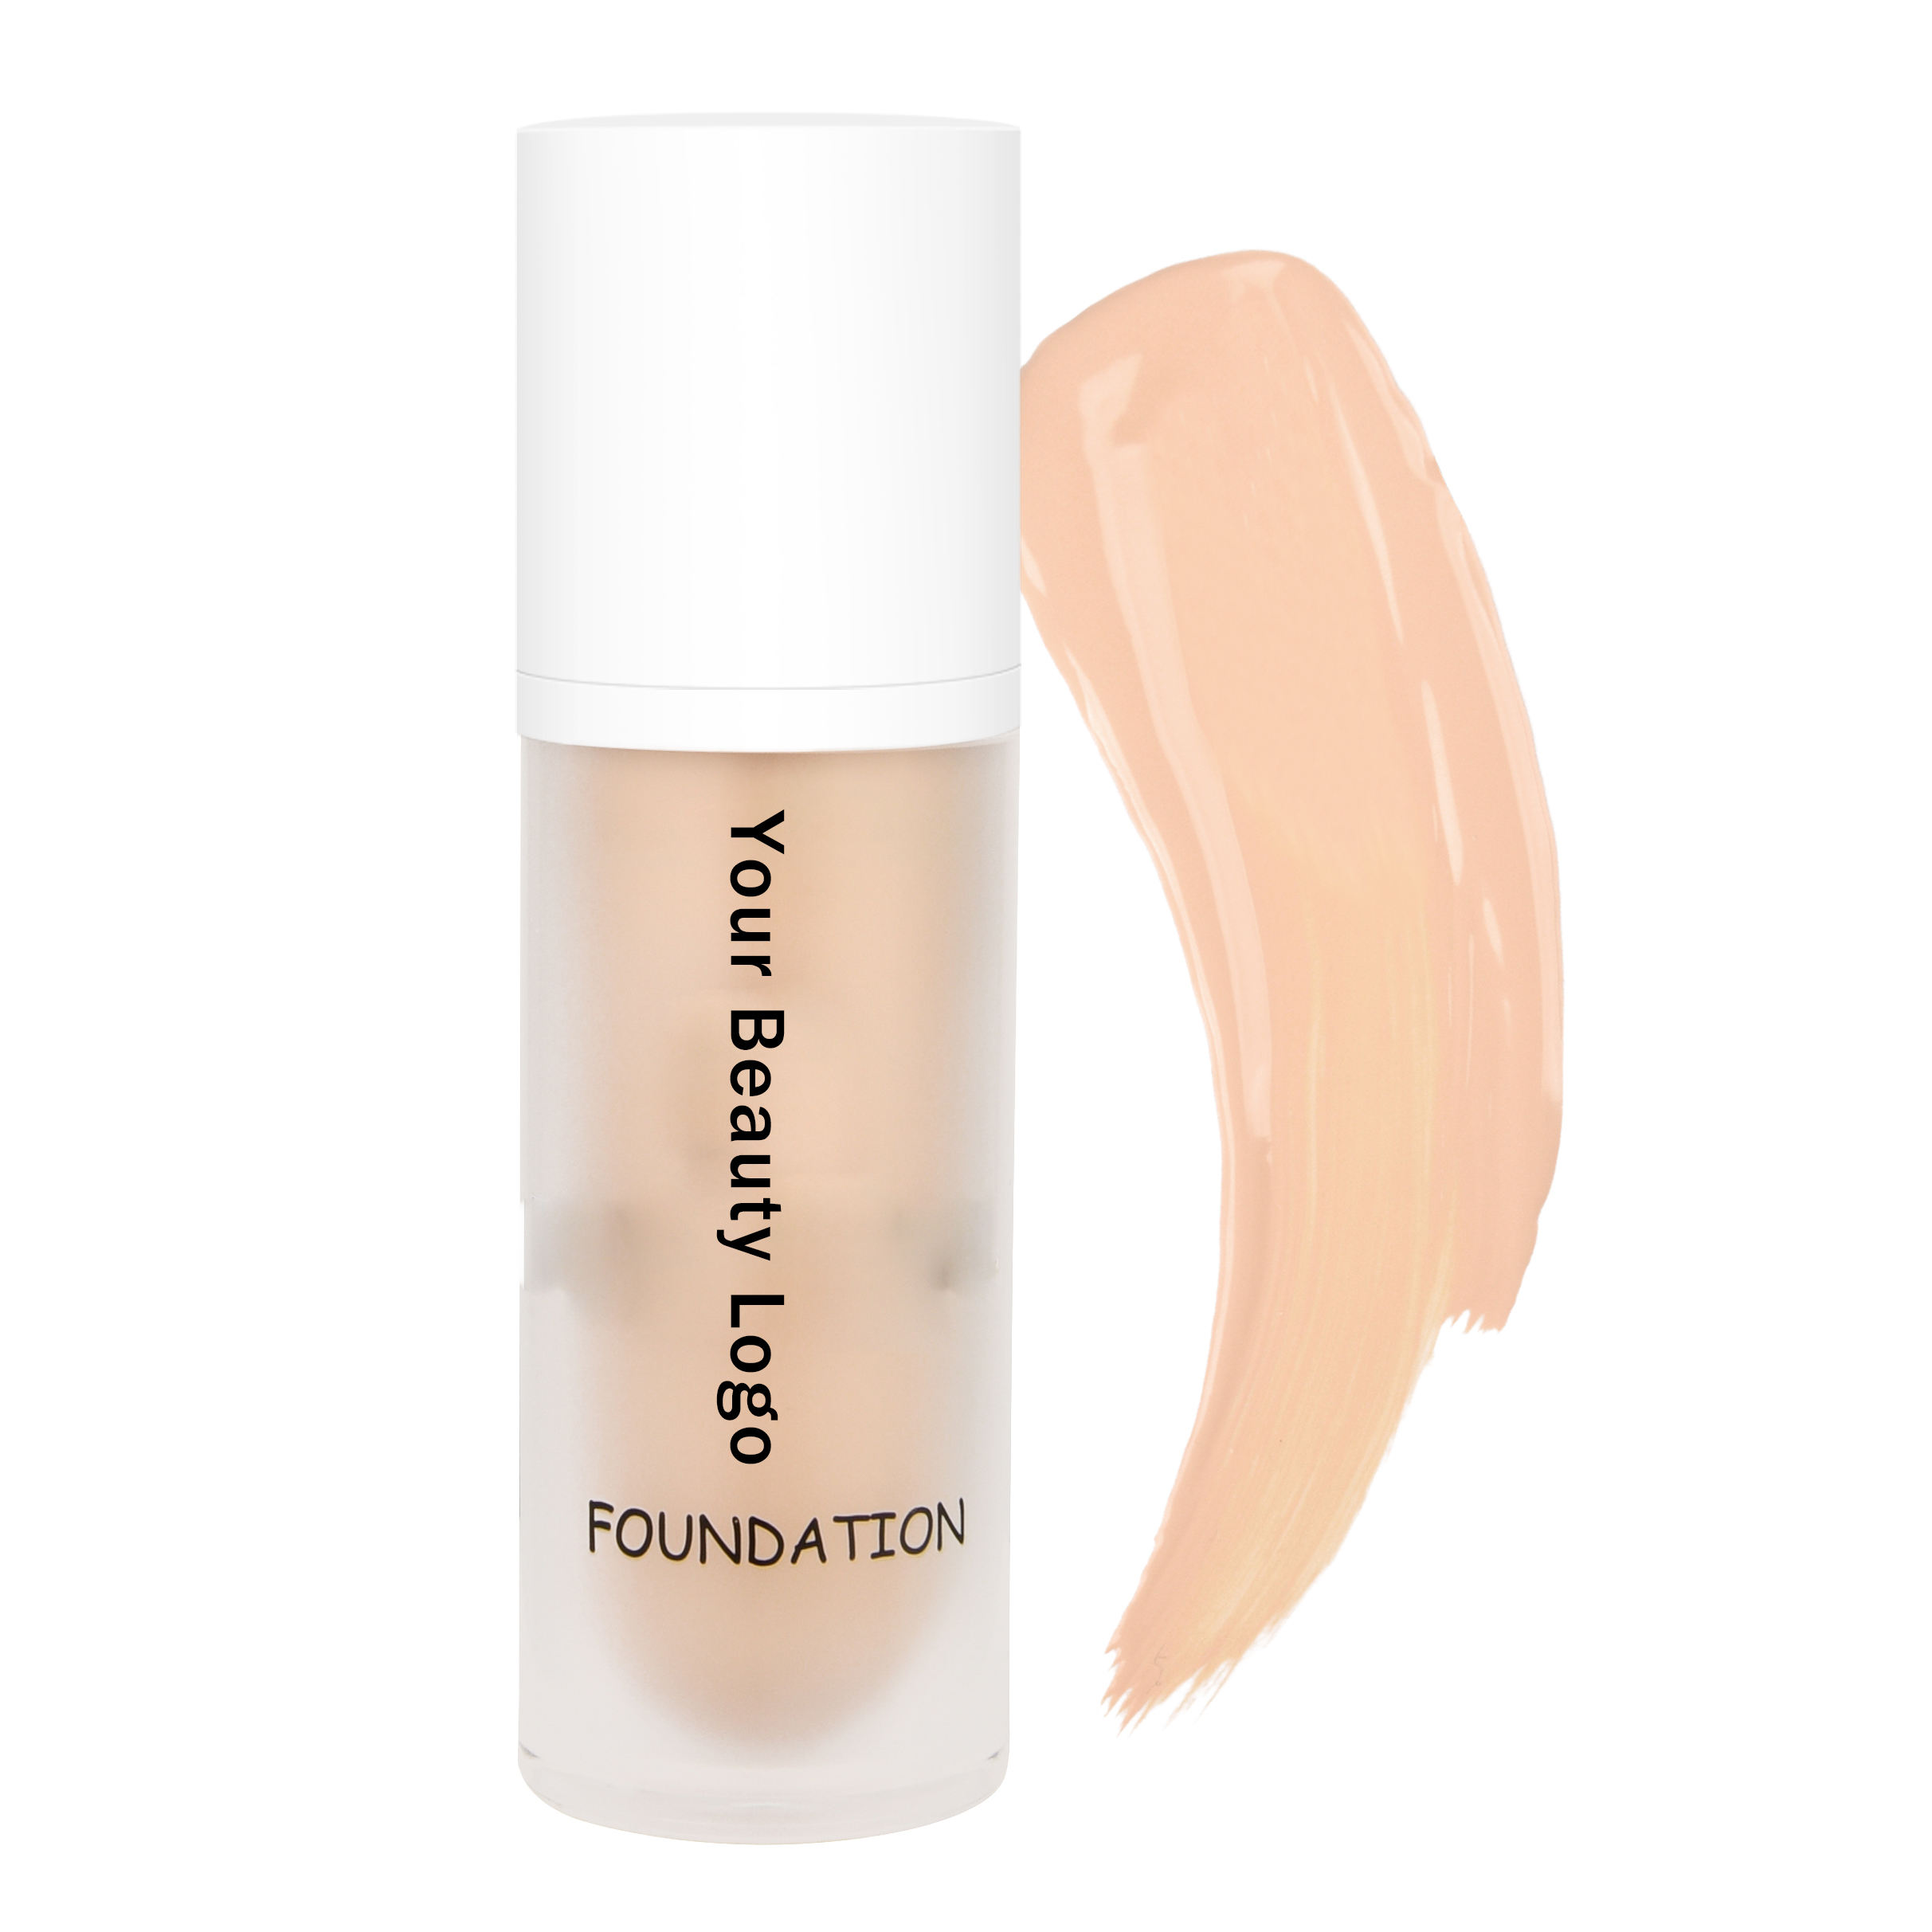 2020 Newly launched private label makeup liquid foundation